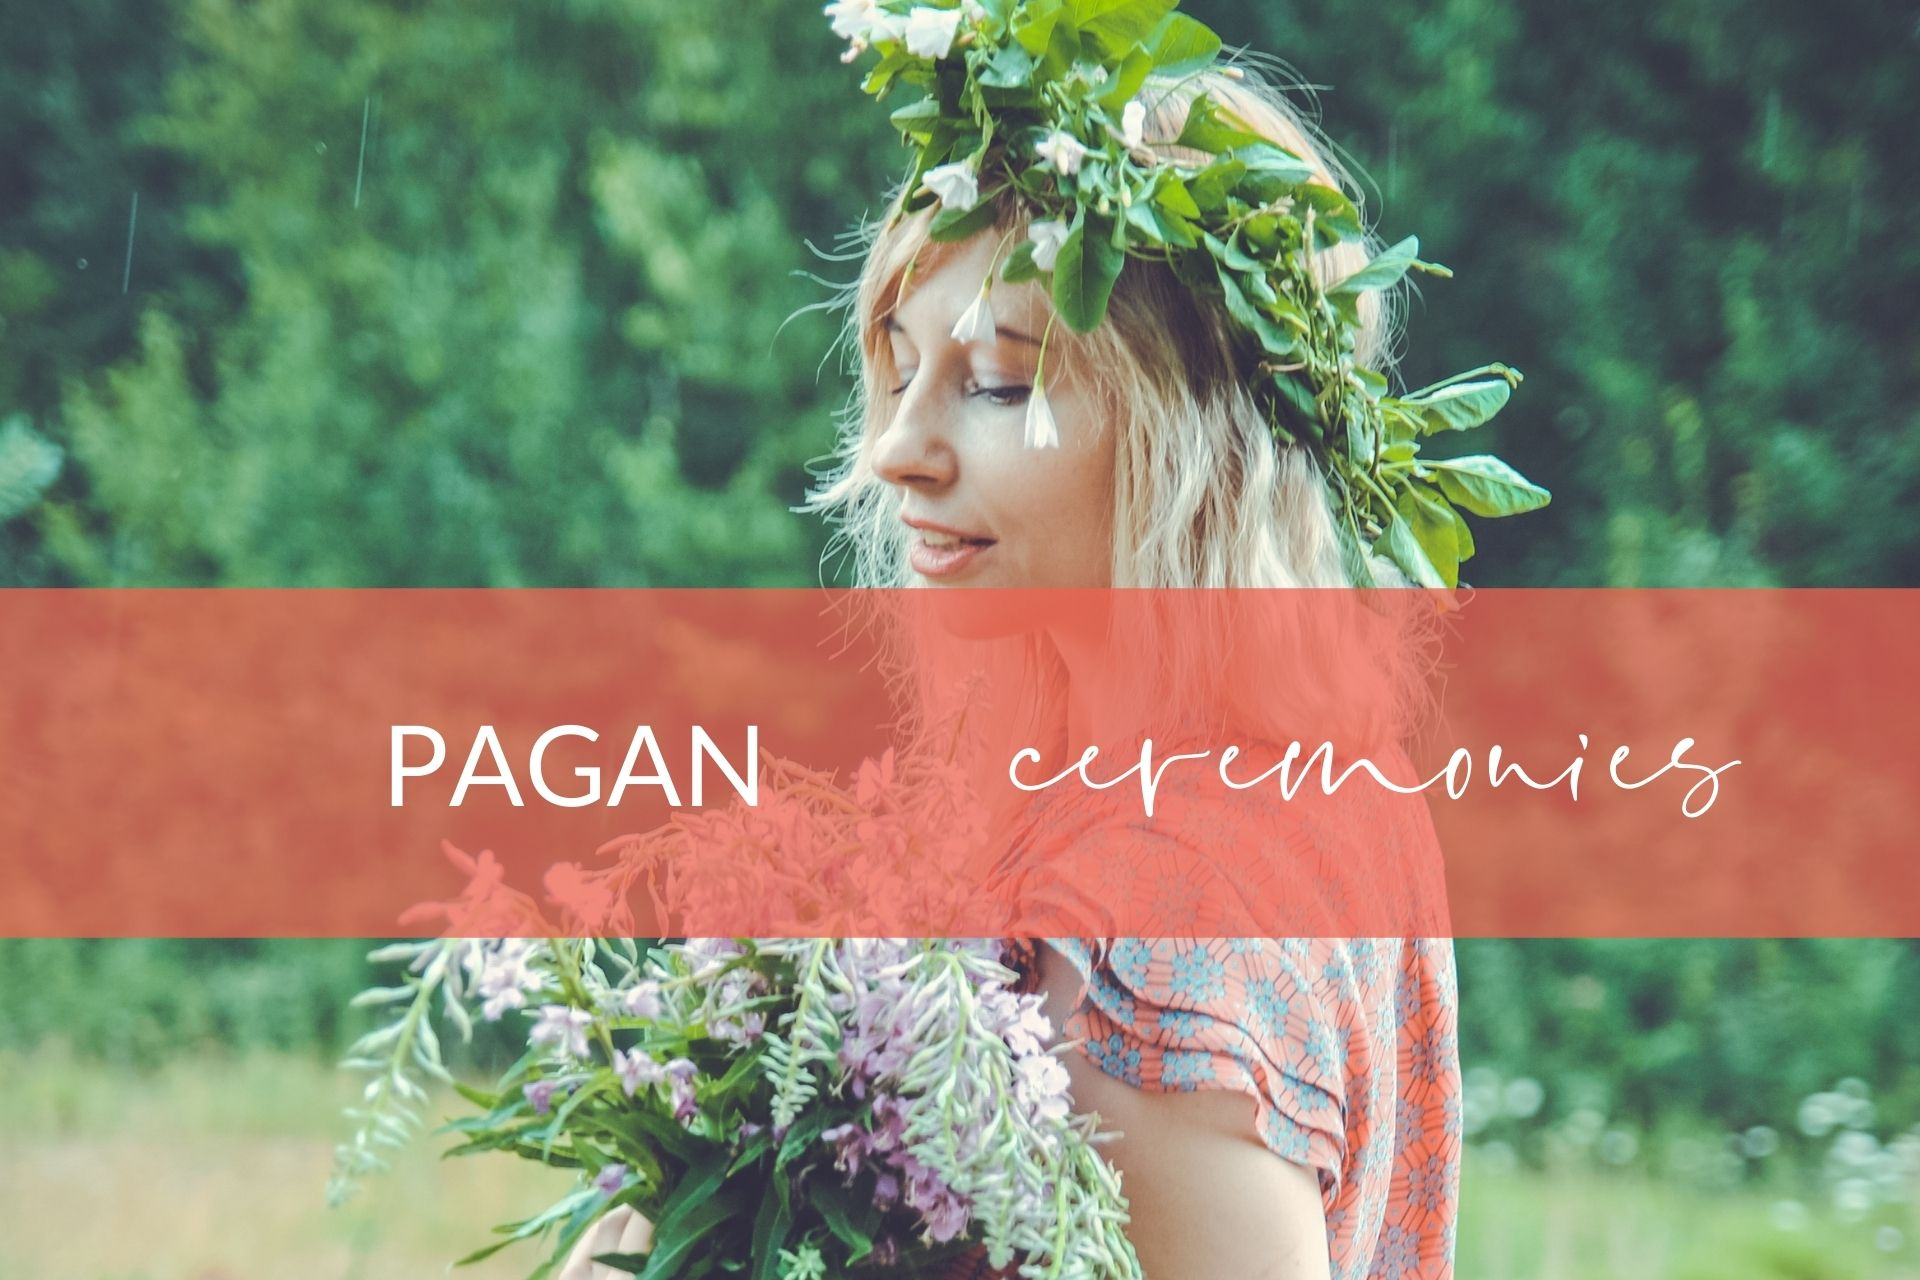 Pagan Ceremonies